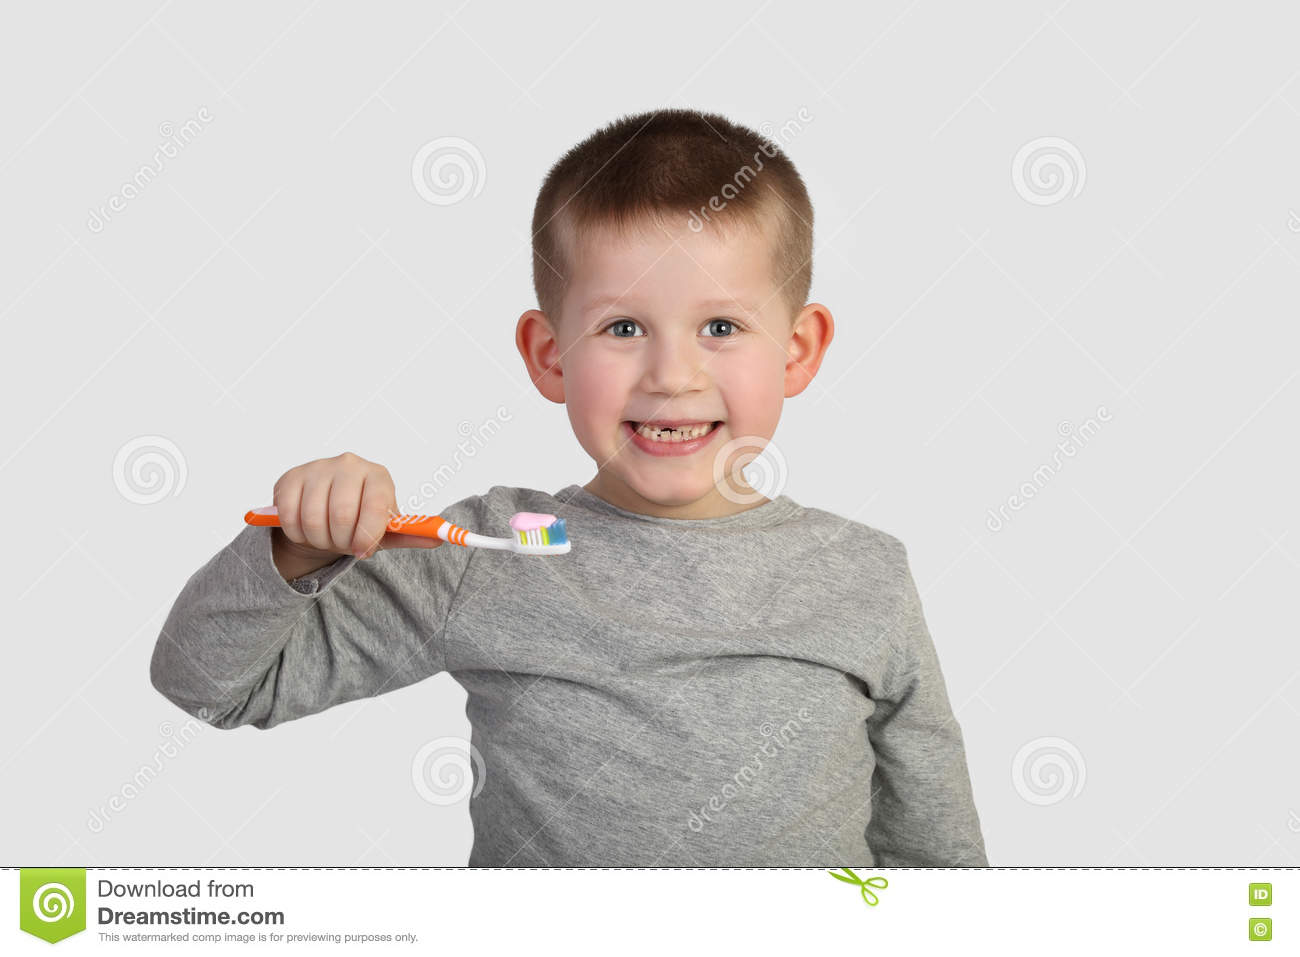 Little boy going to brush teeth